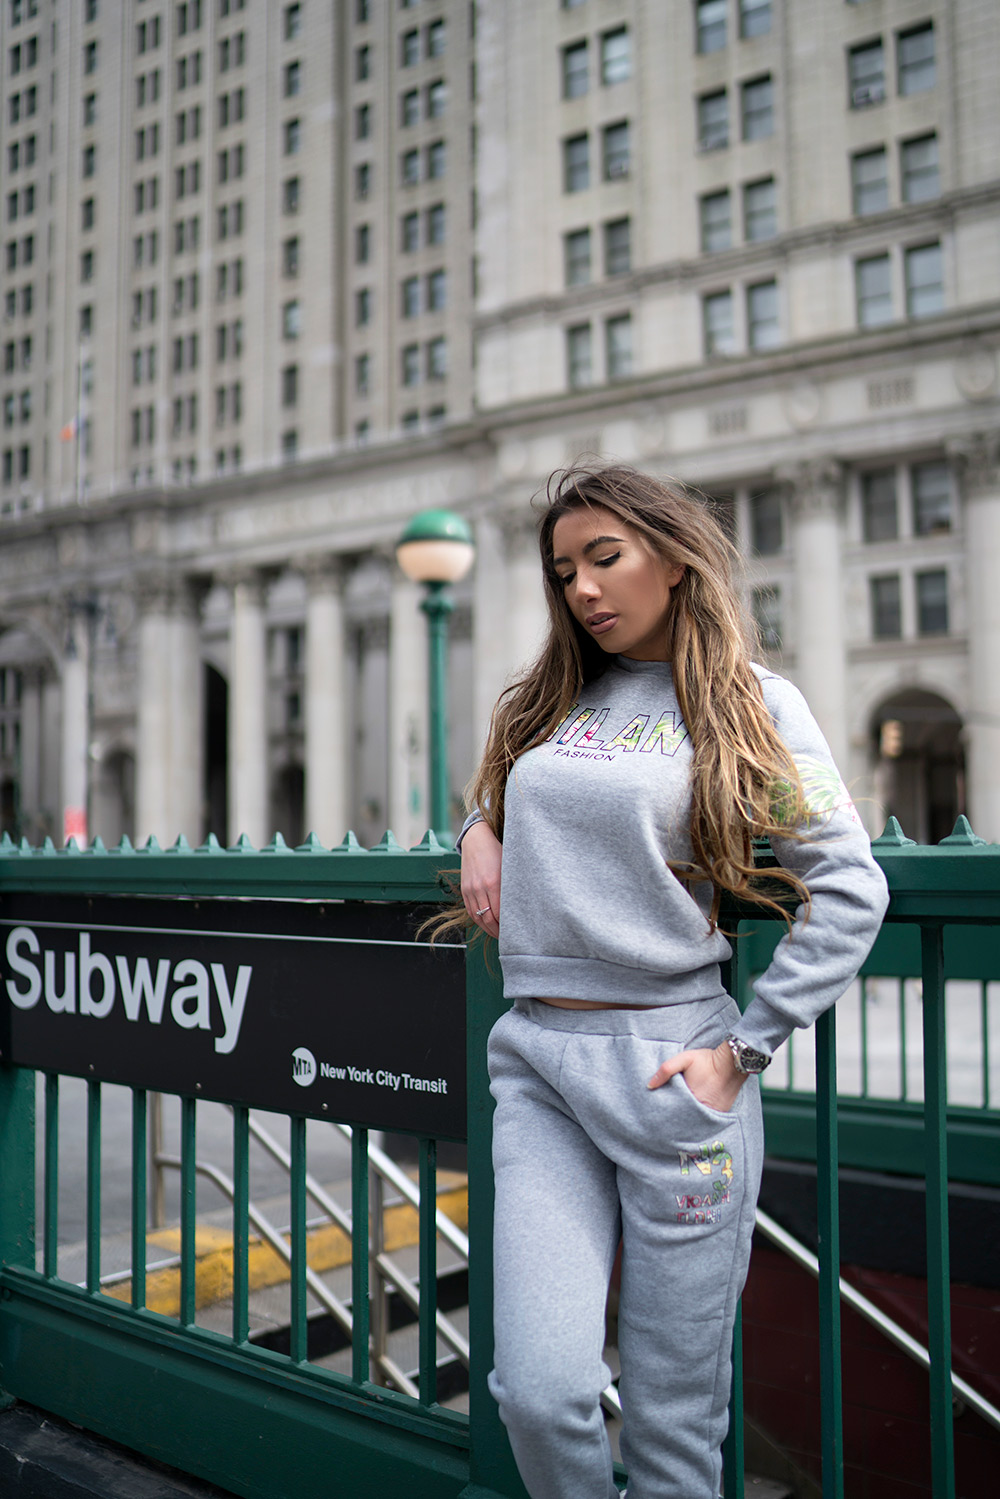 Subway NYC photoshoot, DressLink Review, The most comfortable sweatpants